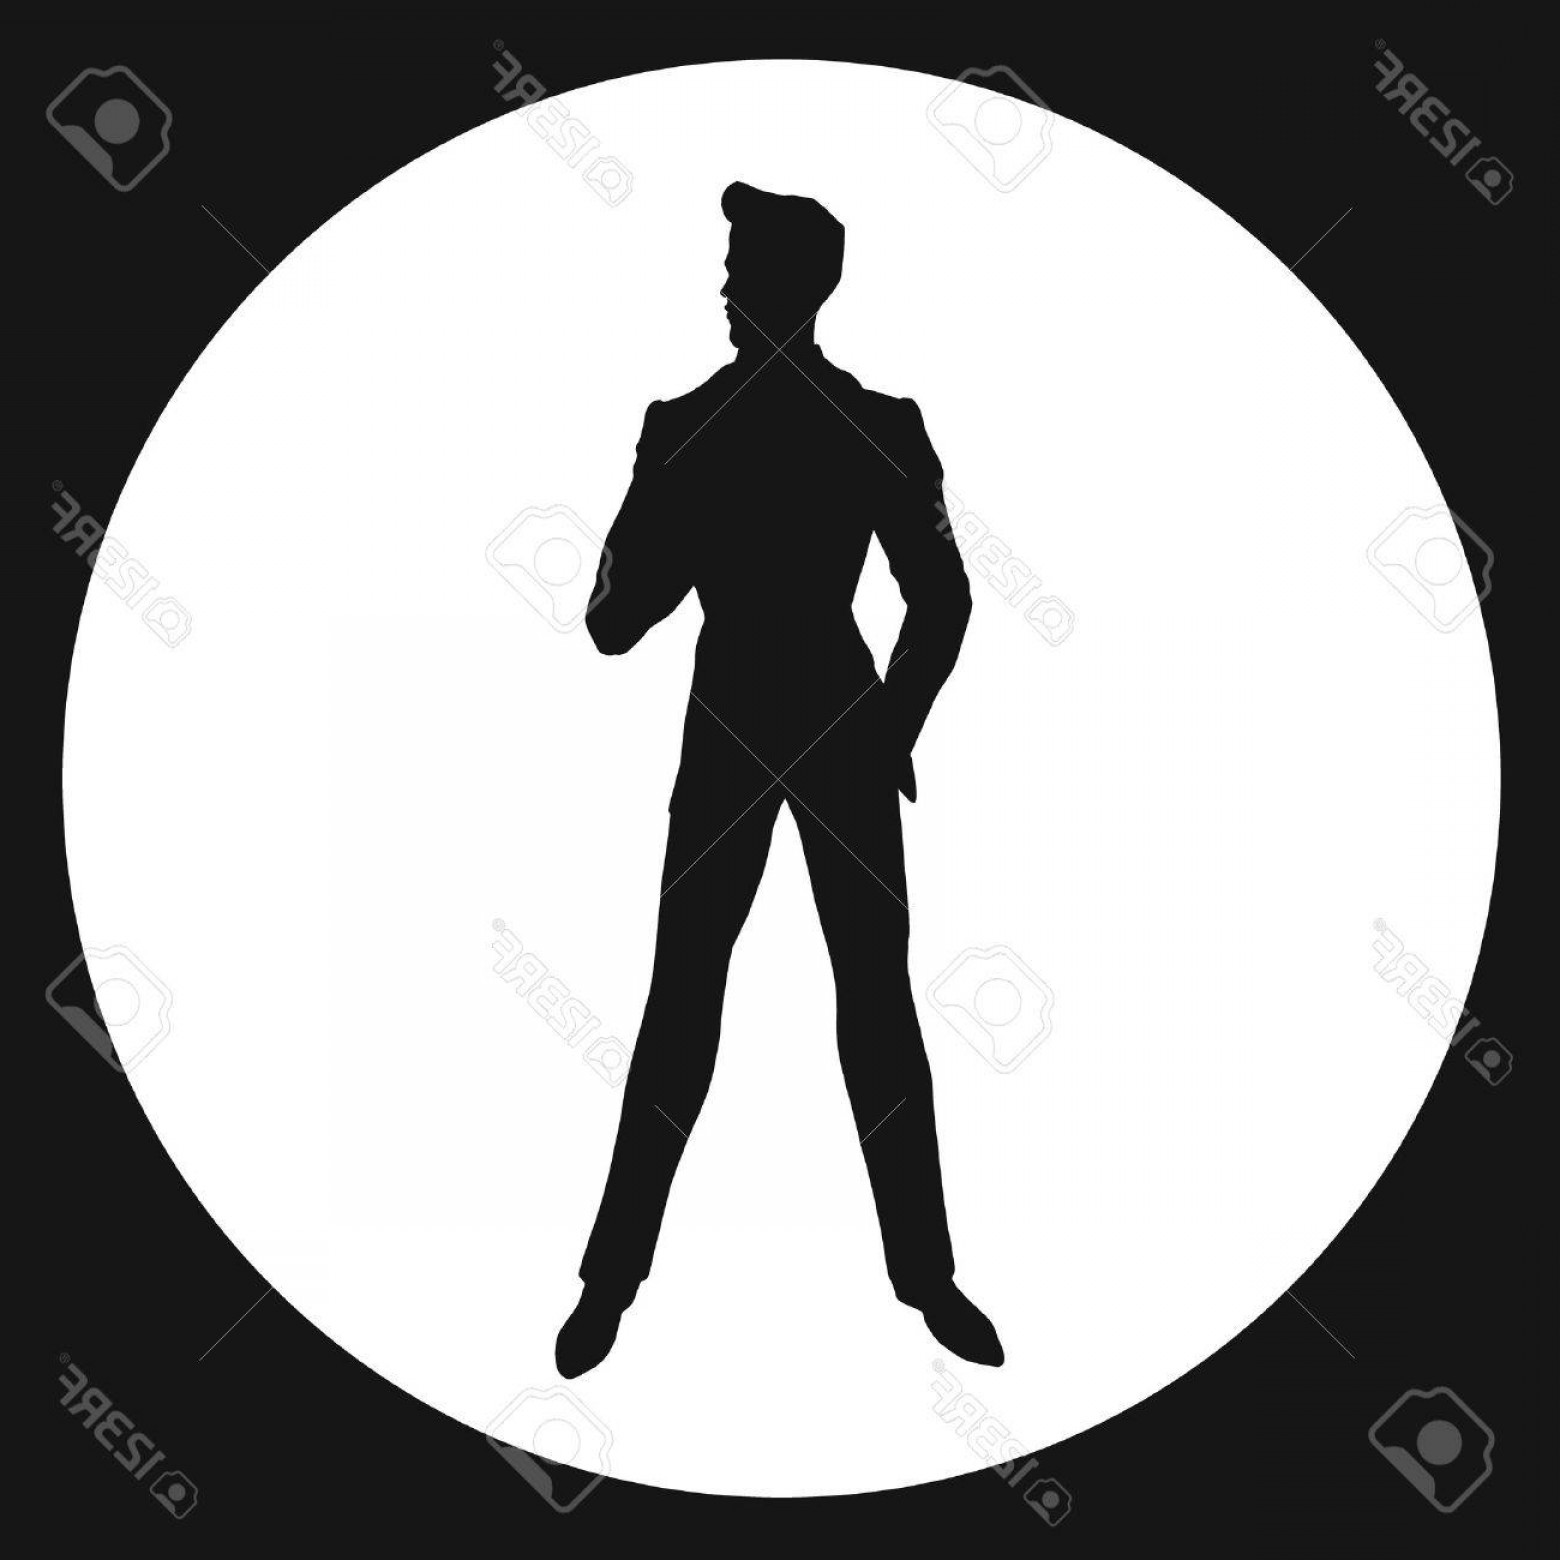 James Bond Silhouette Vector: Photostock Vector Man Silhouette James Bond